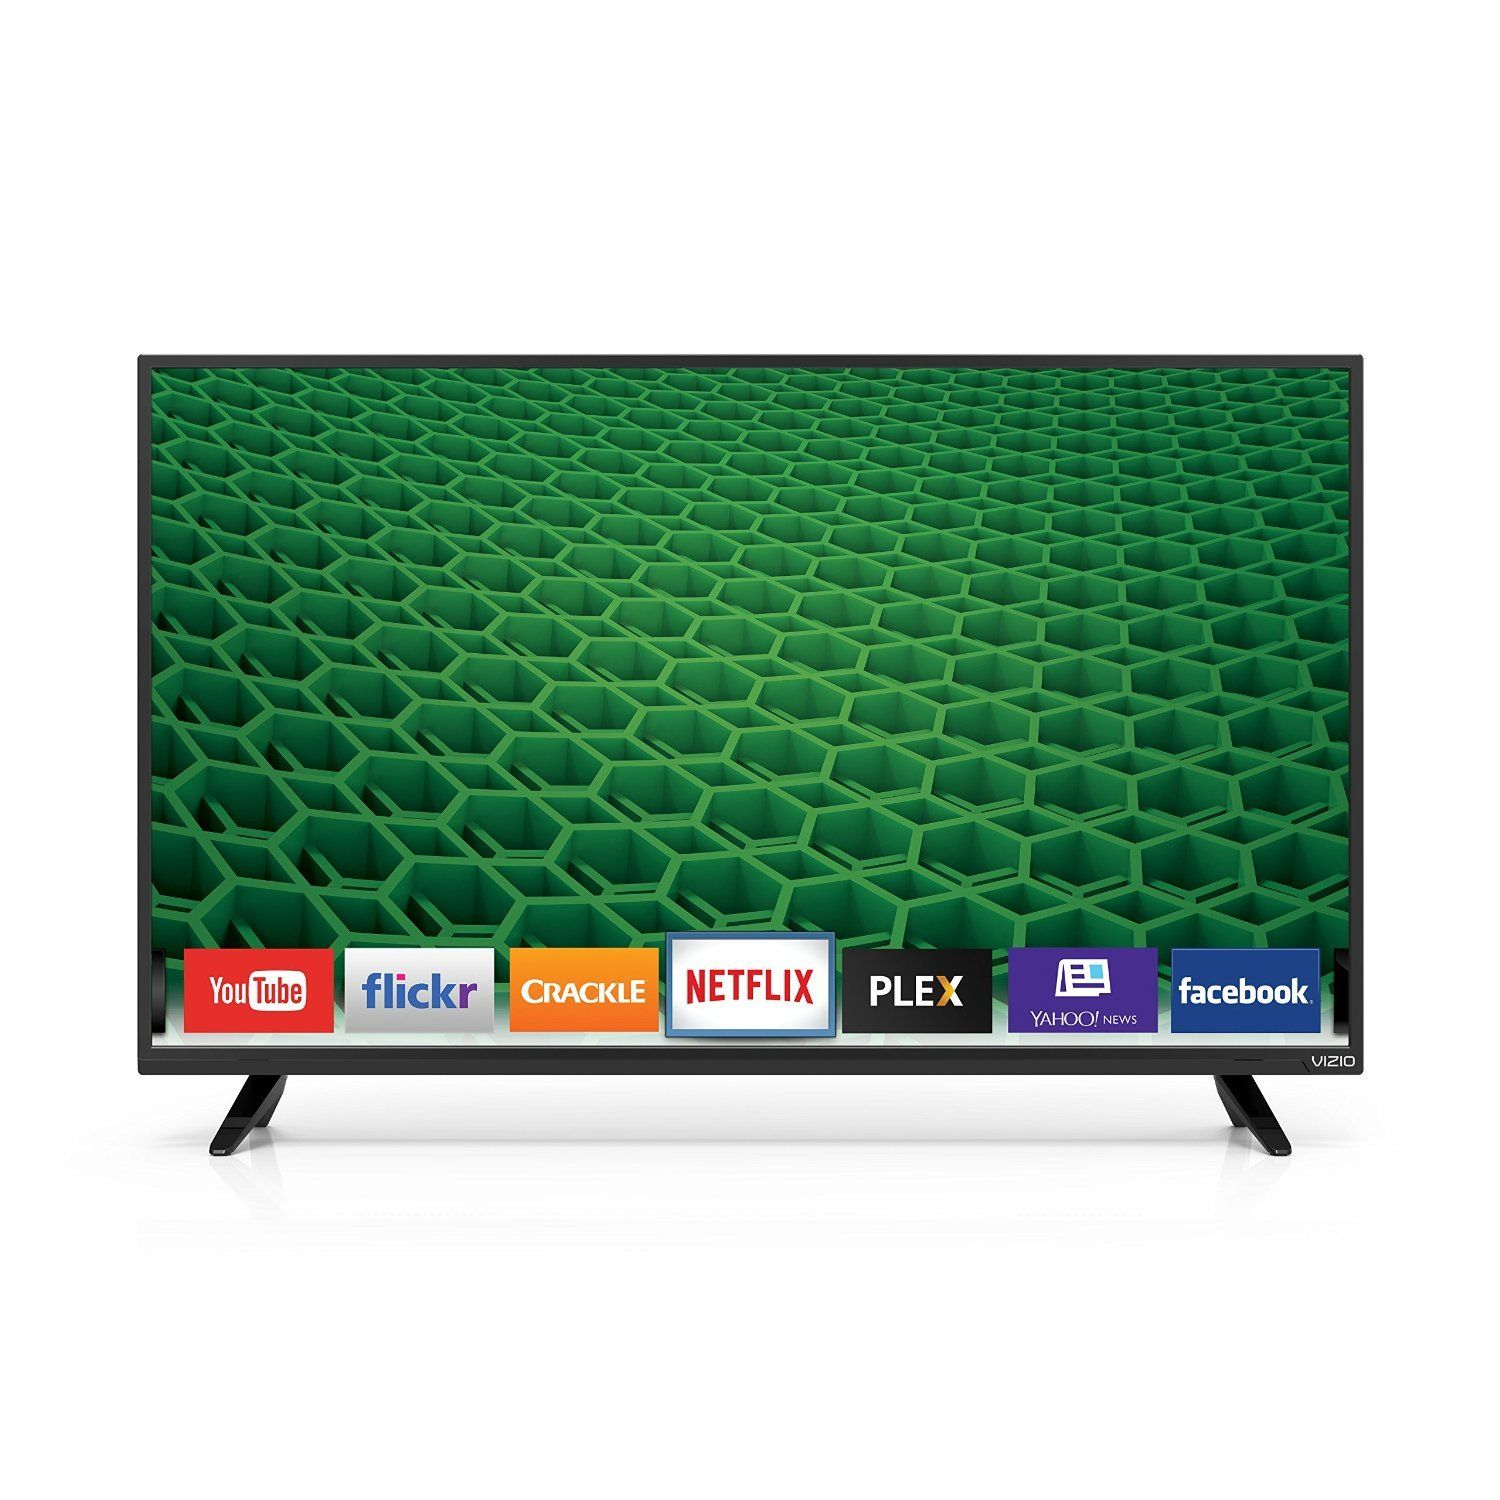 Vizio D40d1 Dseries 40 Class 1080p 120hz Full Array Led Smart Tv Black Certified Refurbished Want Additional Info Click On Th With Images Smart Tv Video Services Vizio